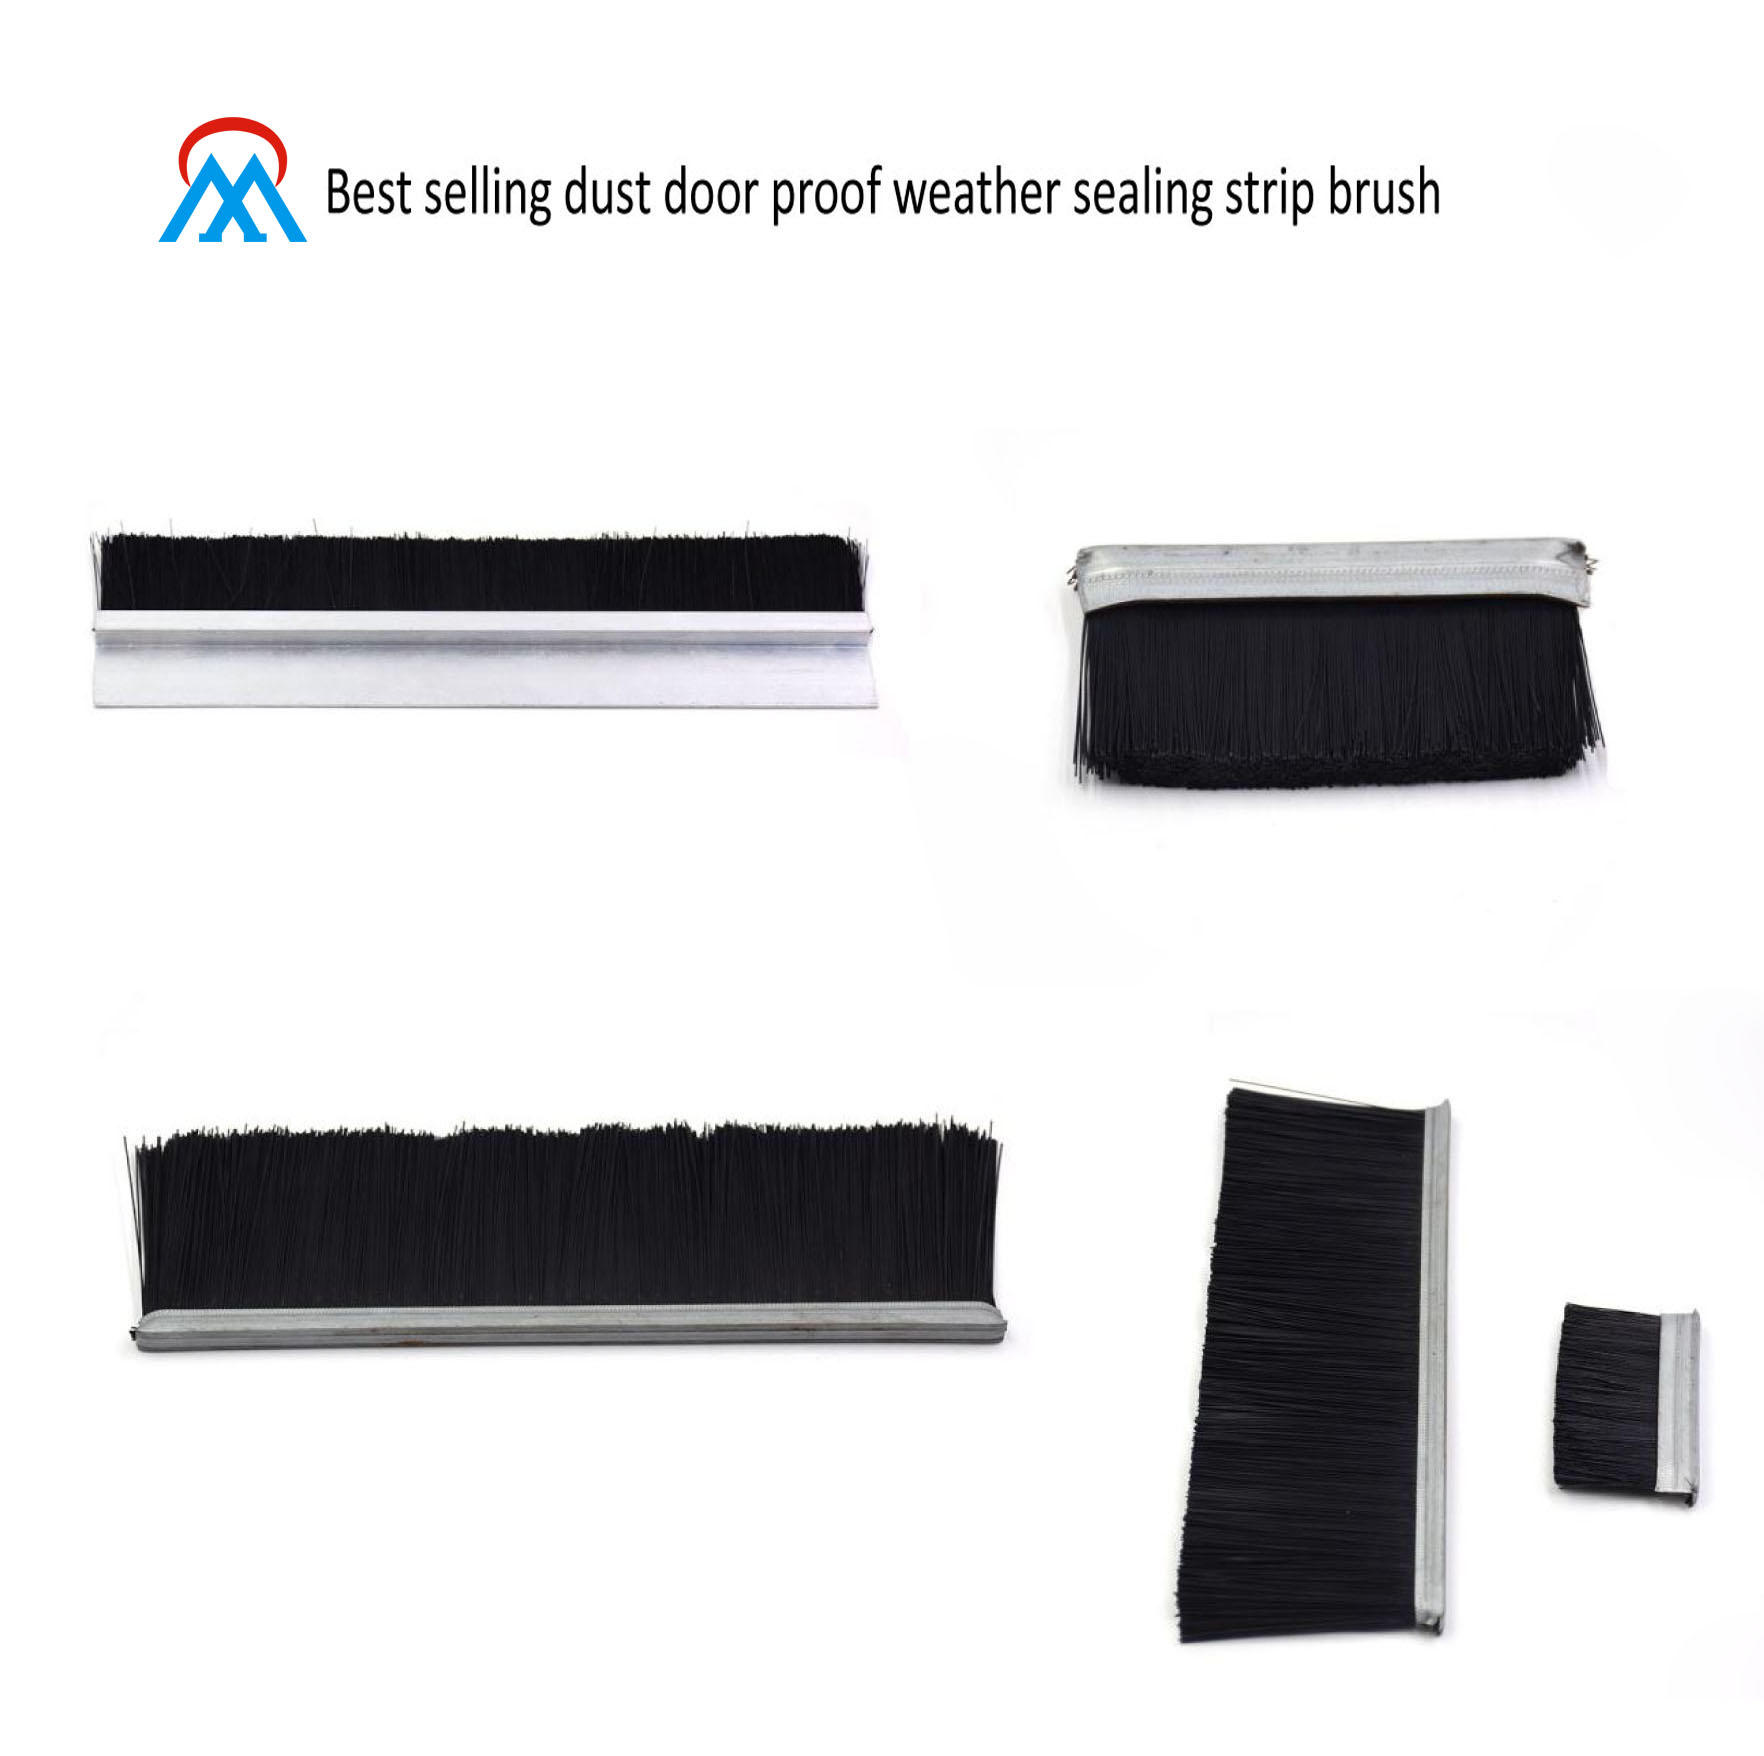 Best selling dust door proof weather sealing strip brush